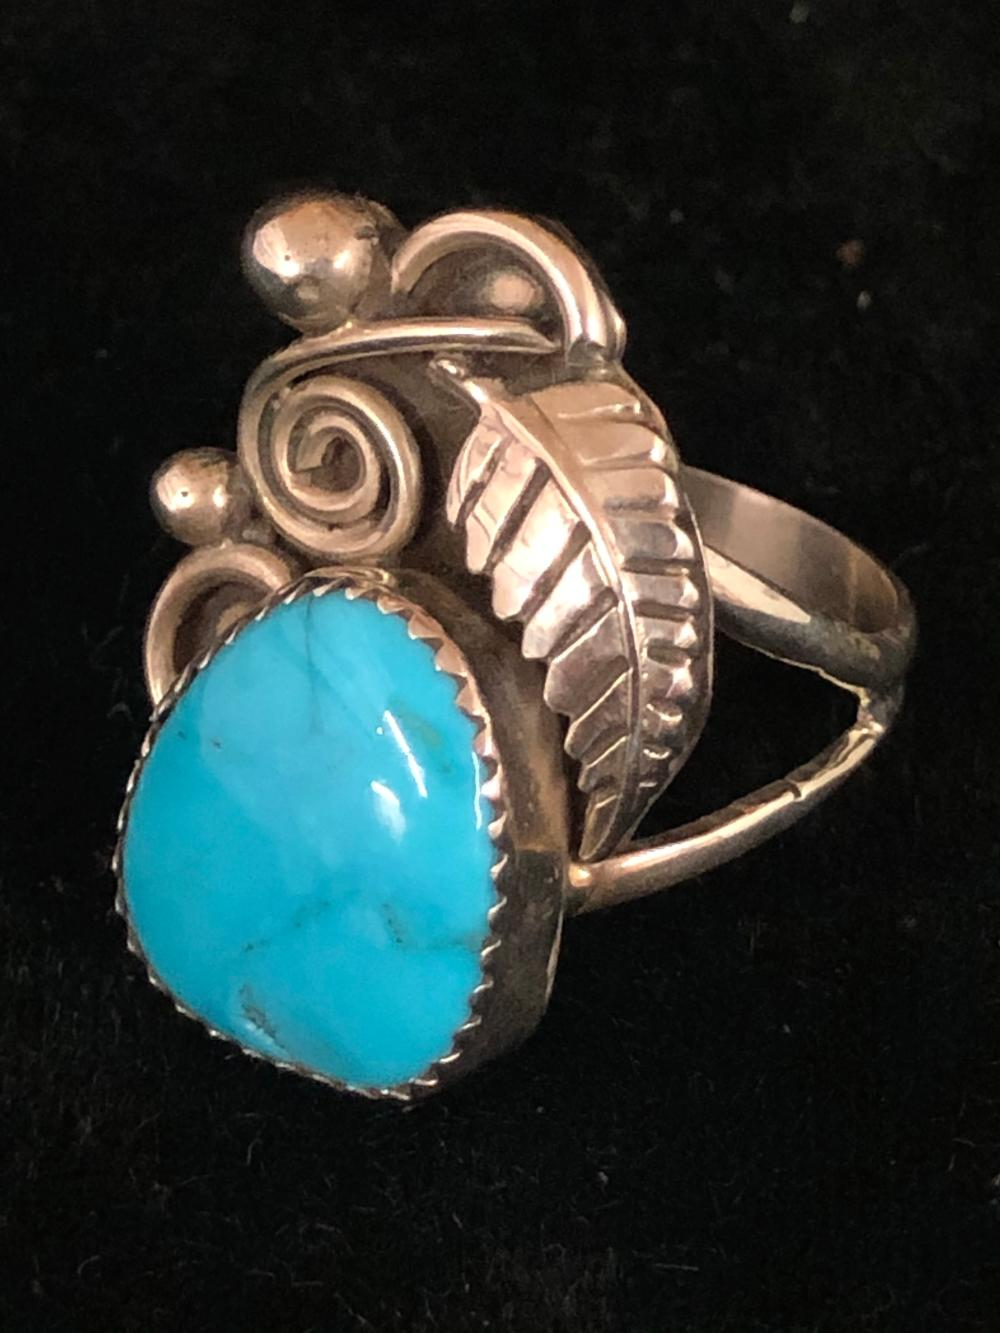 Turquoise with feather design sterling silver ring